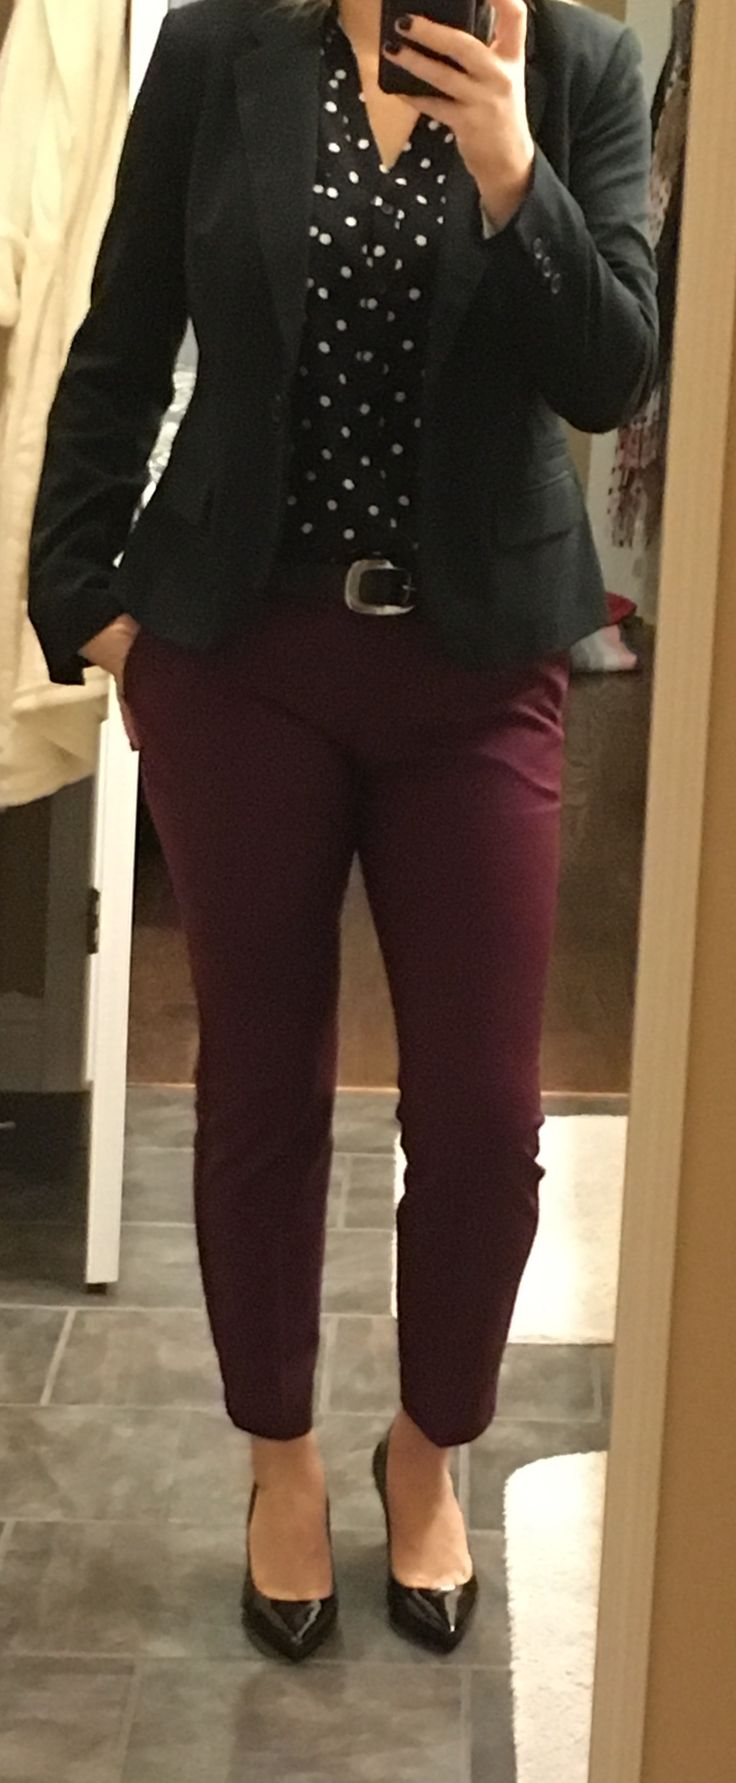 Work wear that is cute! Cropped/ankle pants & polka dot Portofino shirt from Express, Calvin Klein heels from Amazon and a great black blazer from Target.